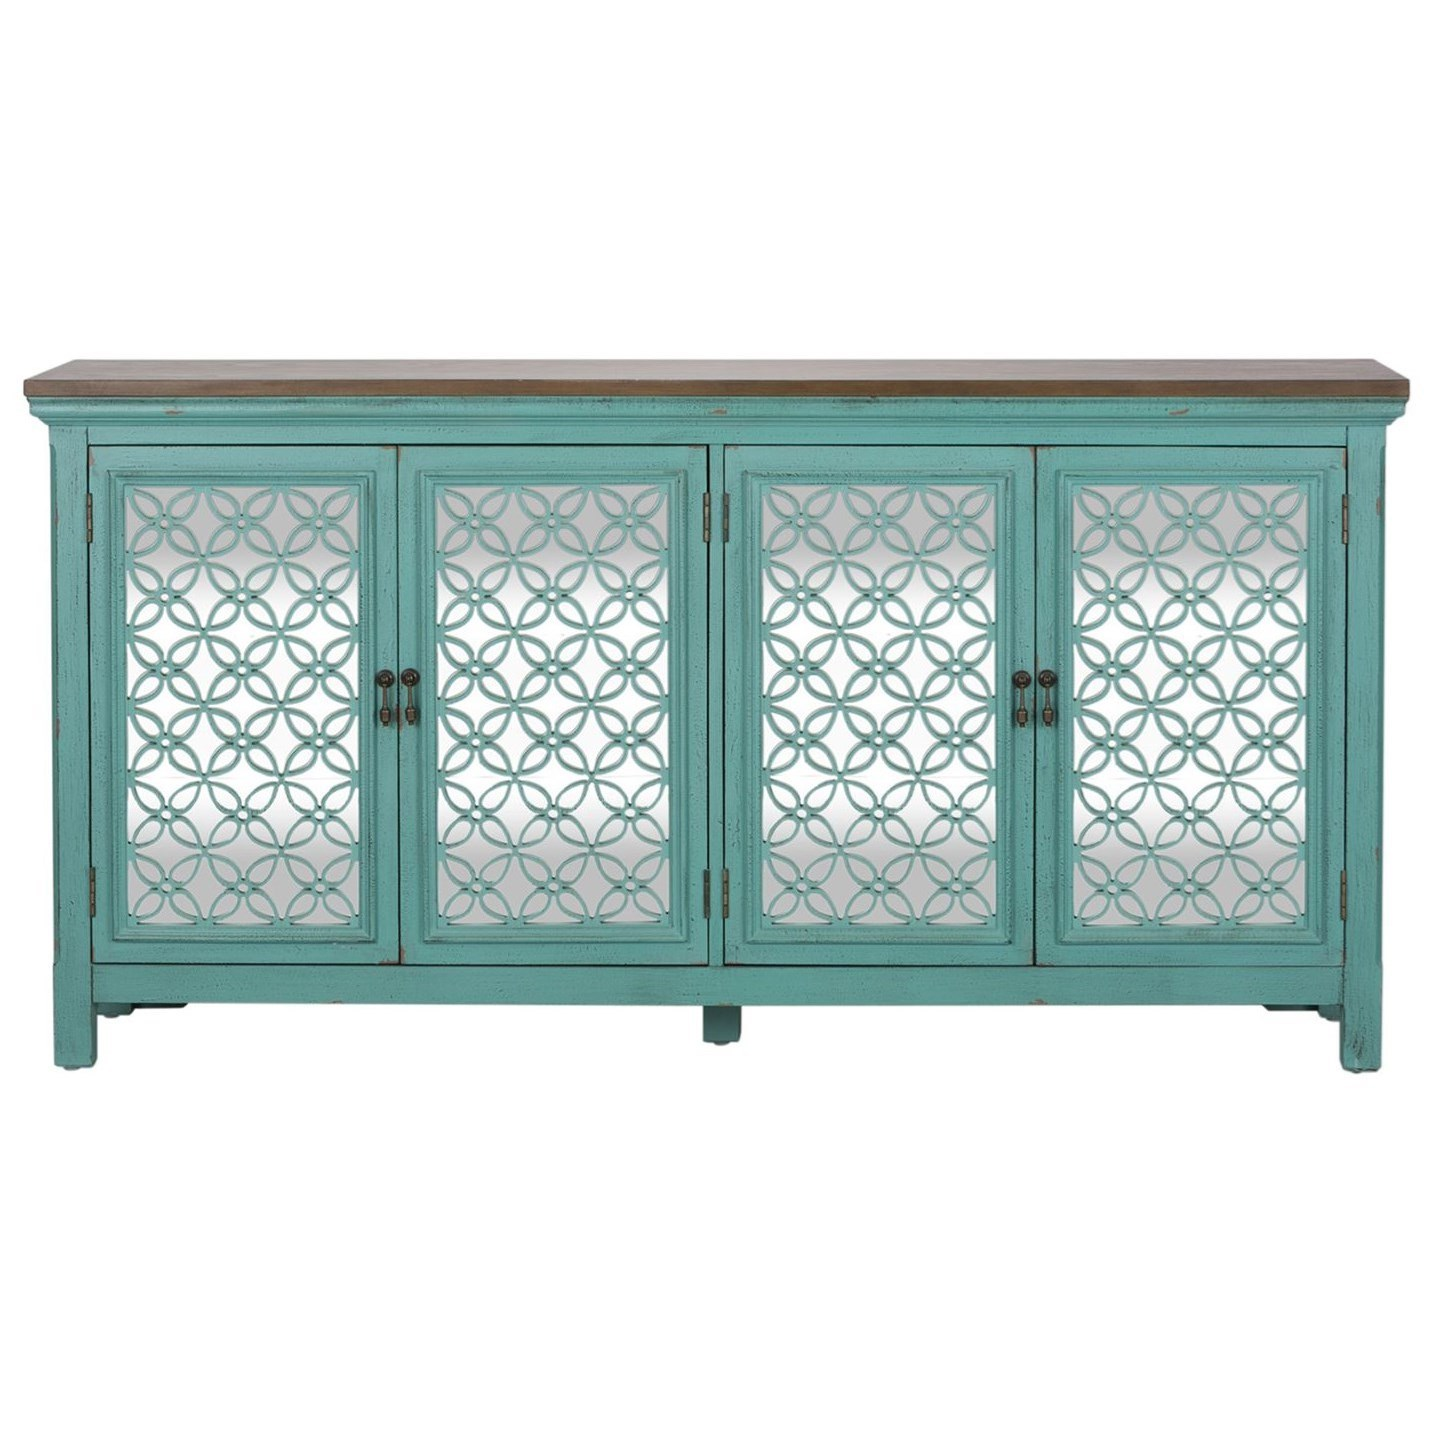 Kensington 4 Door Accent Chest by Liberty Furniture at Upper Room Home Furnishings